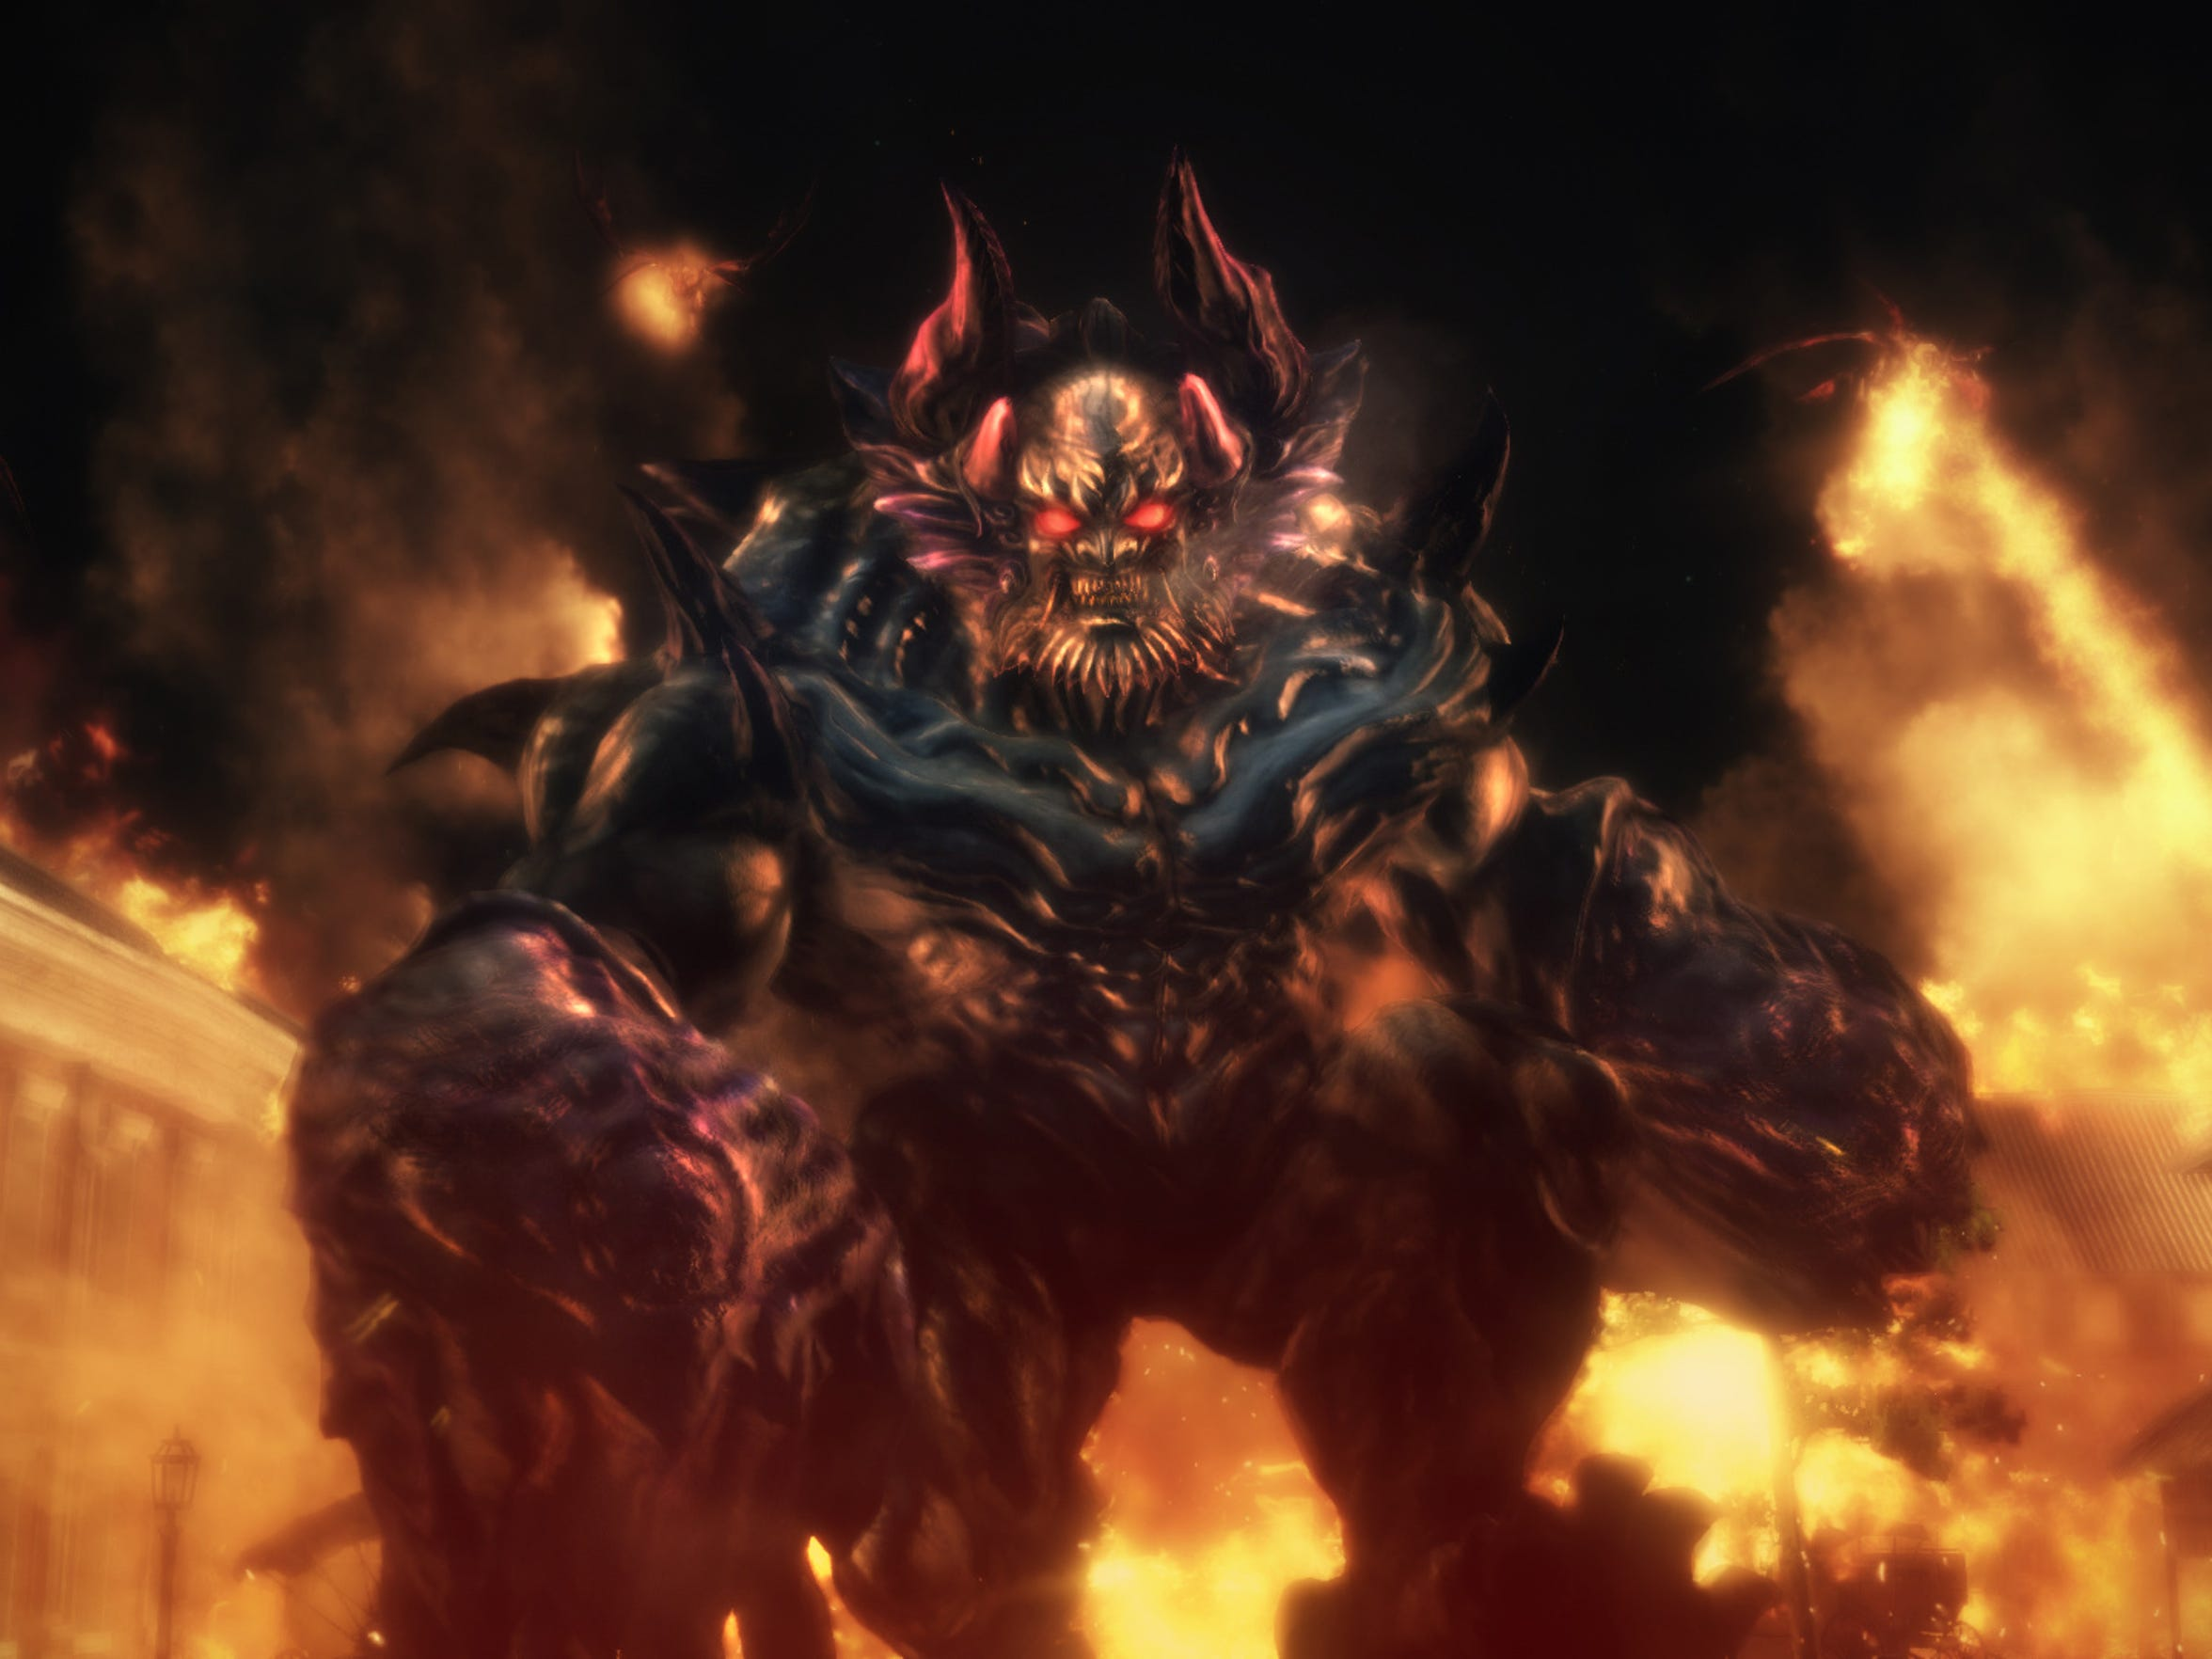 "Devilish ""oni"" or demons launch a fierce assault on mankind in Toukiden 2."